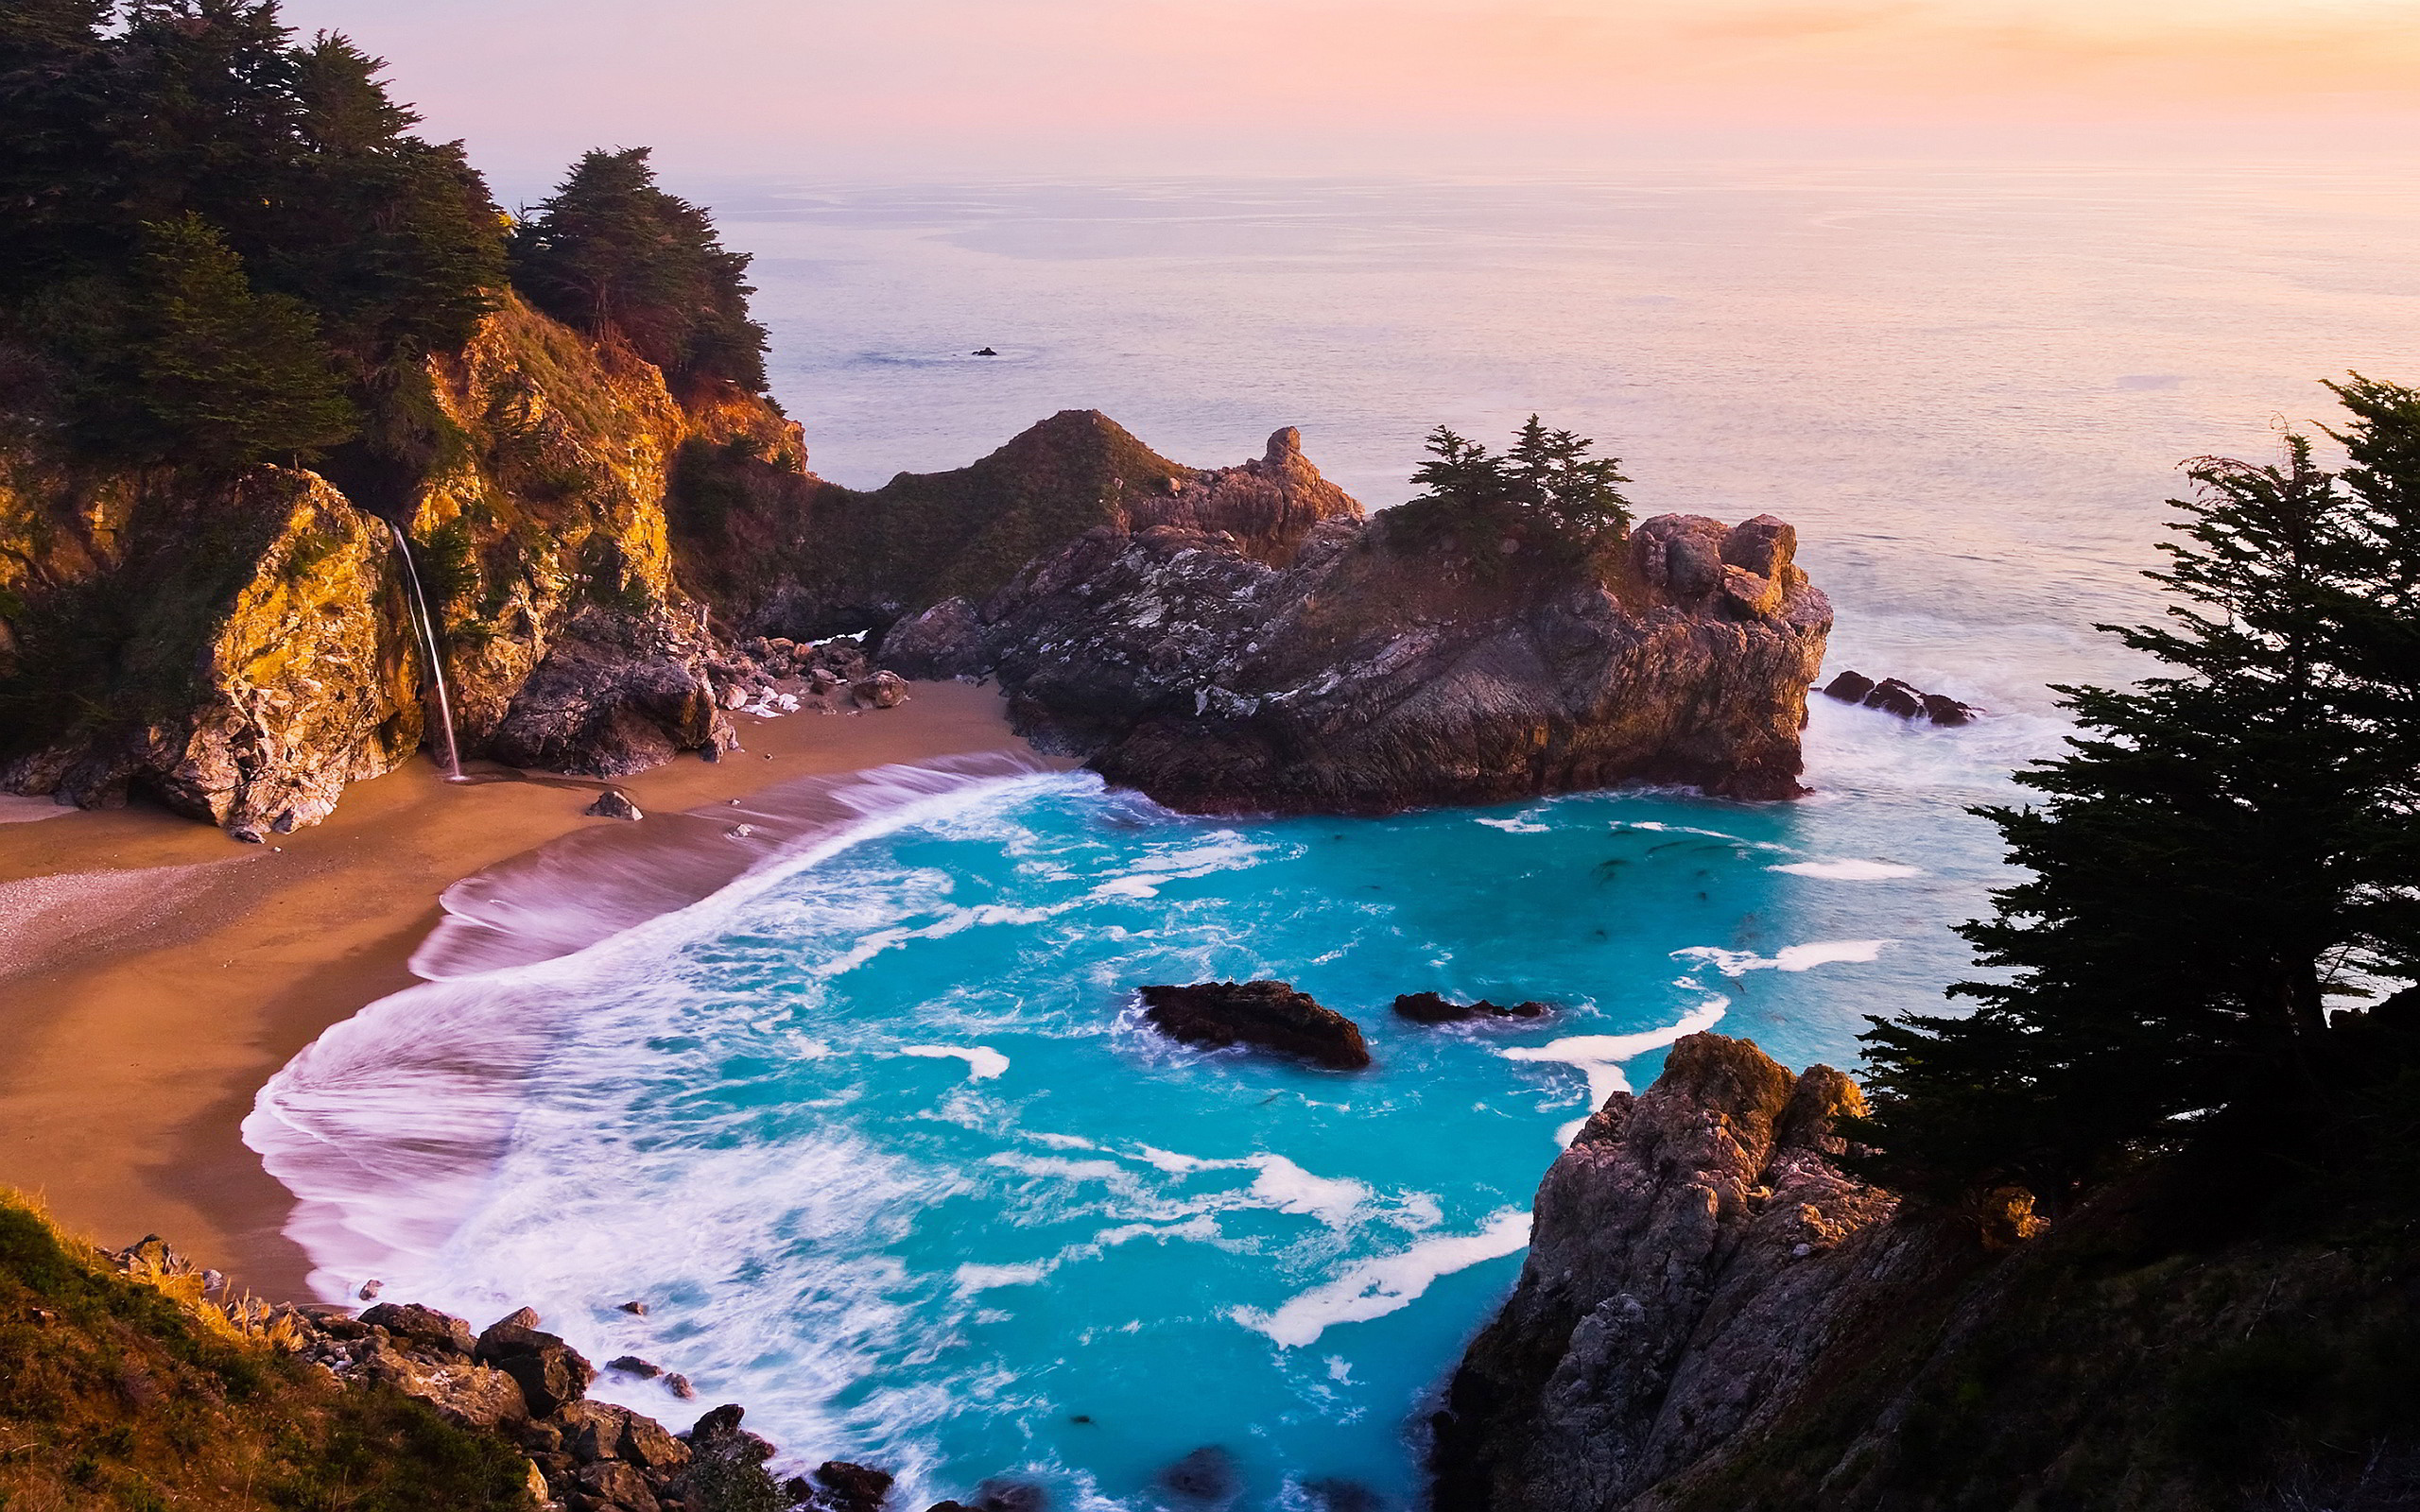 2560x1600 Related Wallpapers from Ocean Wave Wallpaper. Mcway falls california